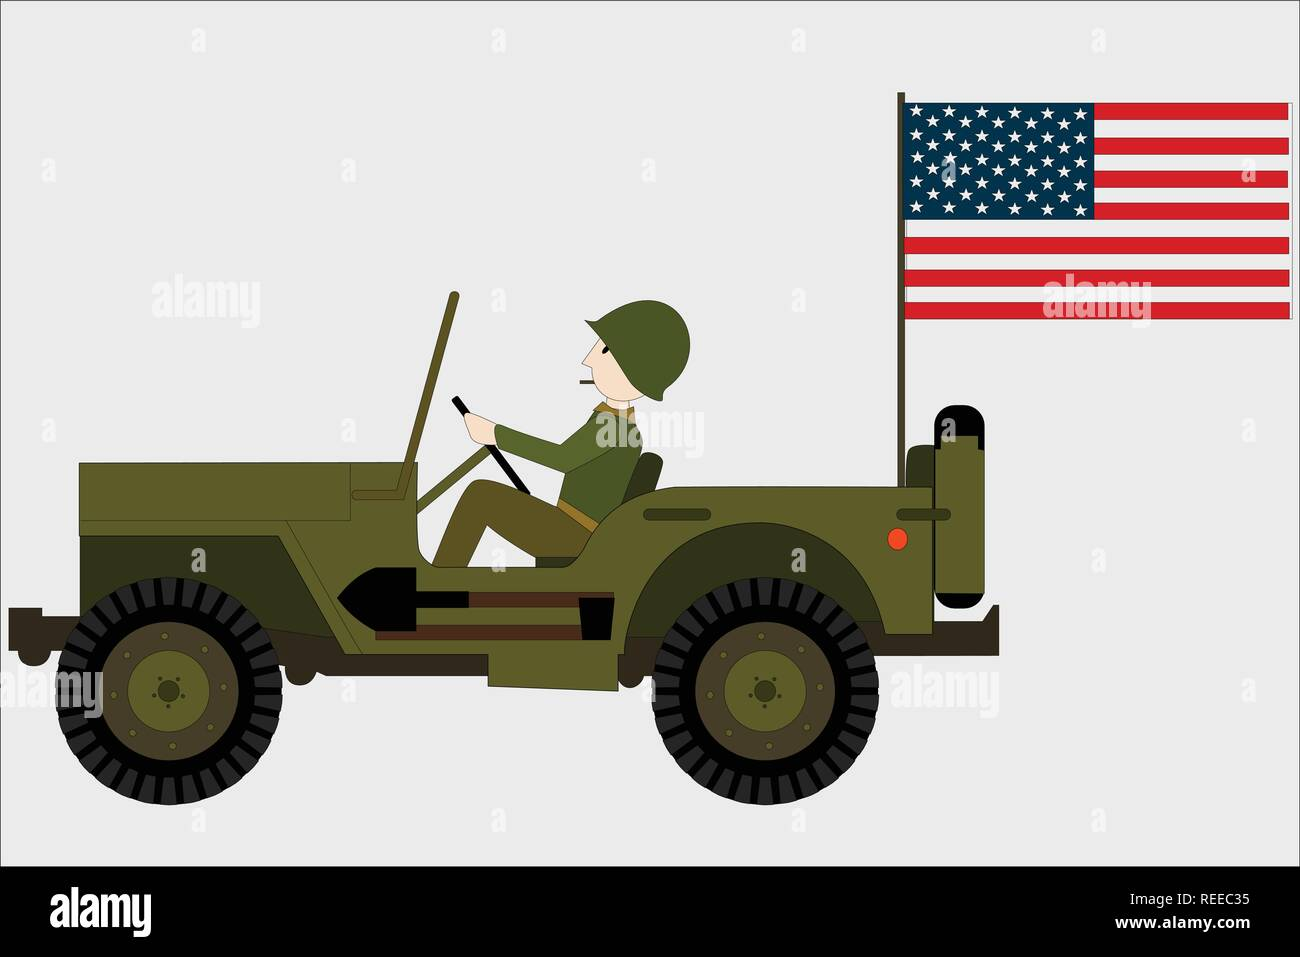 military jeep with a soldier and an american flag - Stock Vector